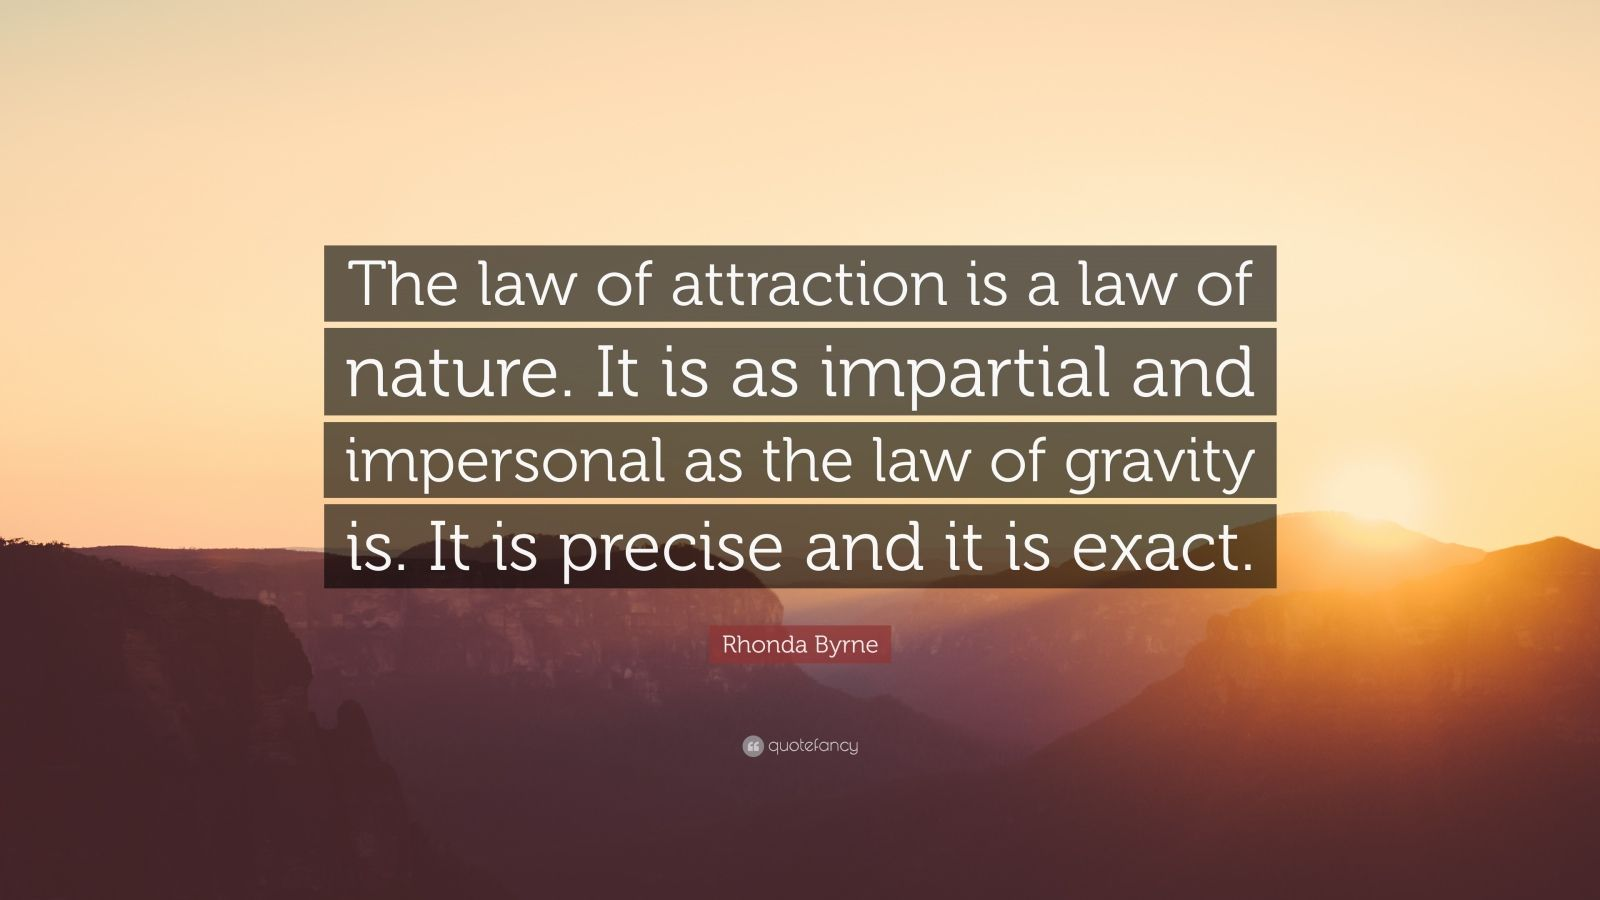 """Rhonda Byrne Quote: """"The law of attraction is a law of nature. It is as impartial and impersonal as the law of gravity is. It is precise and it is exact."""""""